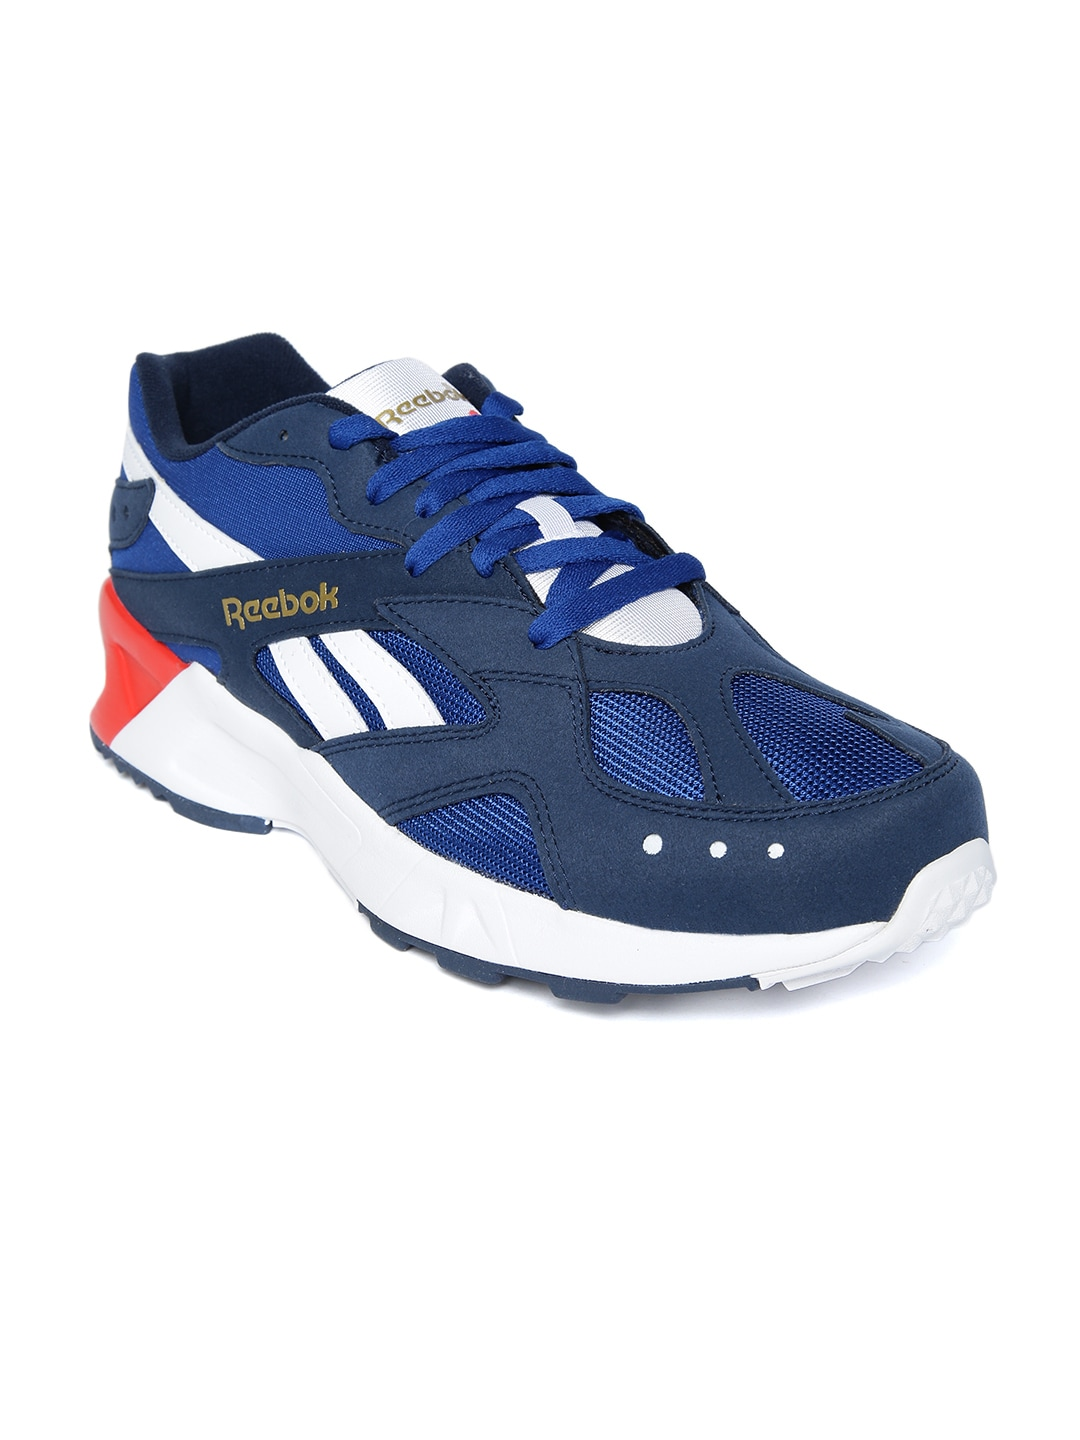 866c0b8dd4e Reebok Classic Shoes - Buy Reebok Classic Shoes online in India